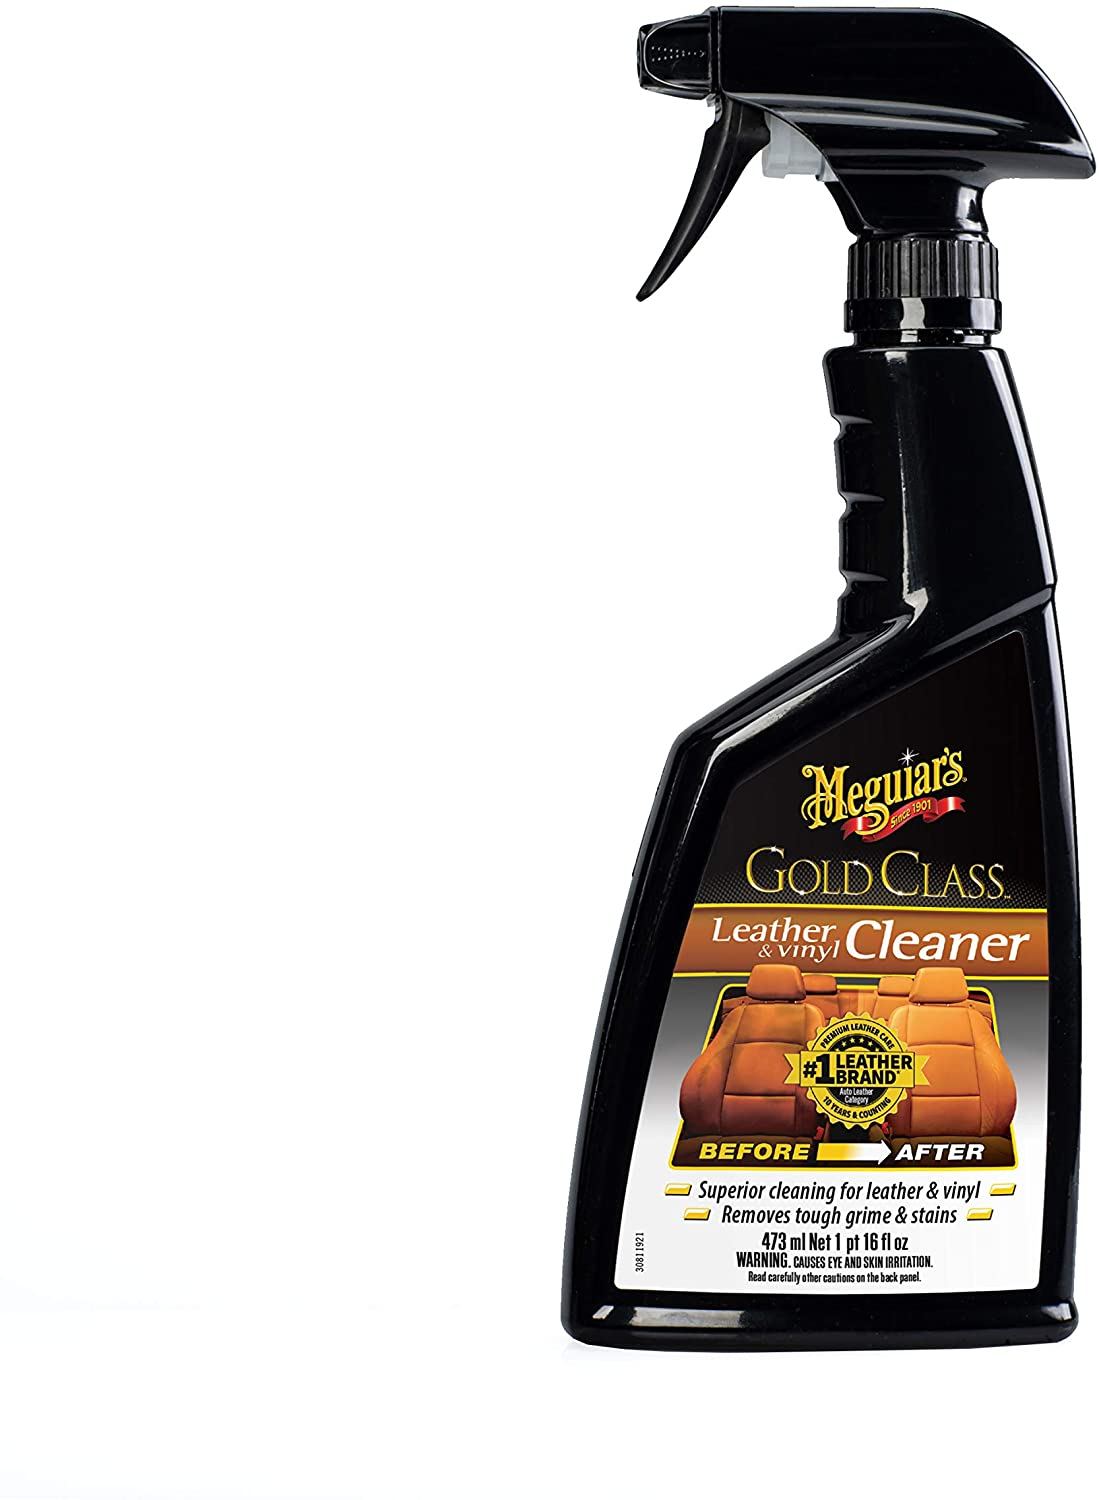 Meguiar's G18516EU Gold Class Leather und Vinyl Cleaner Lederreiniger -